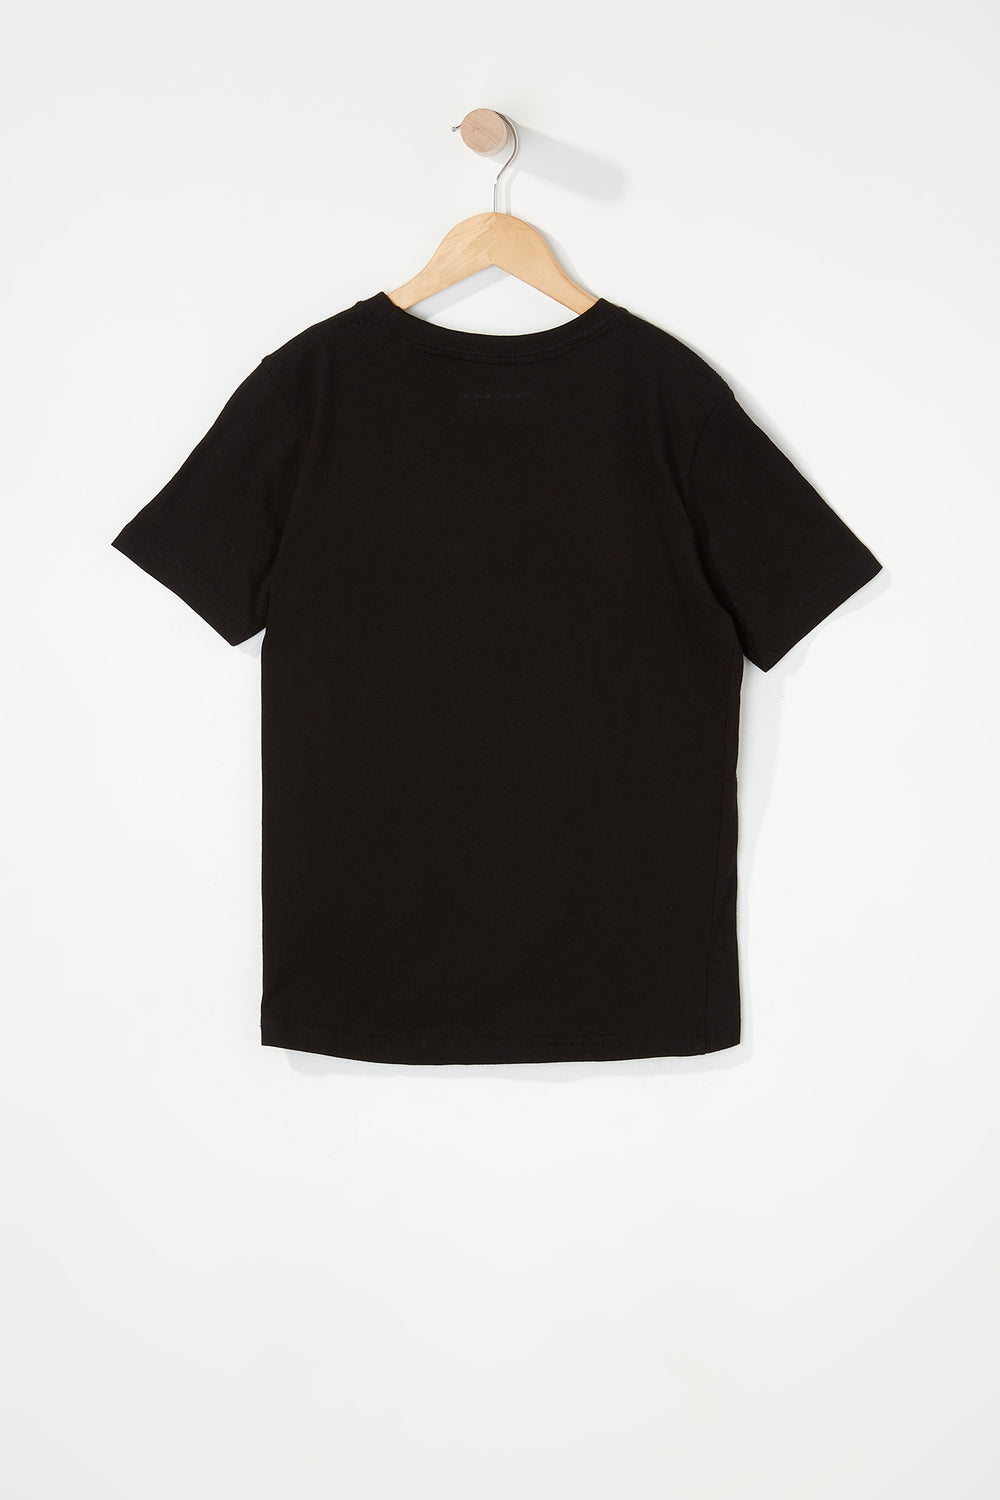 Zoo York Boys Patch Logo T-Shirt Black